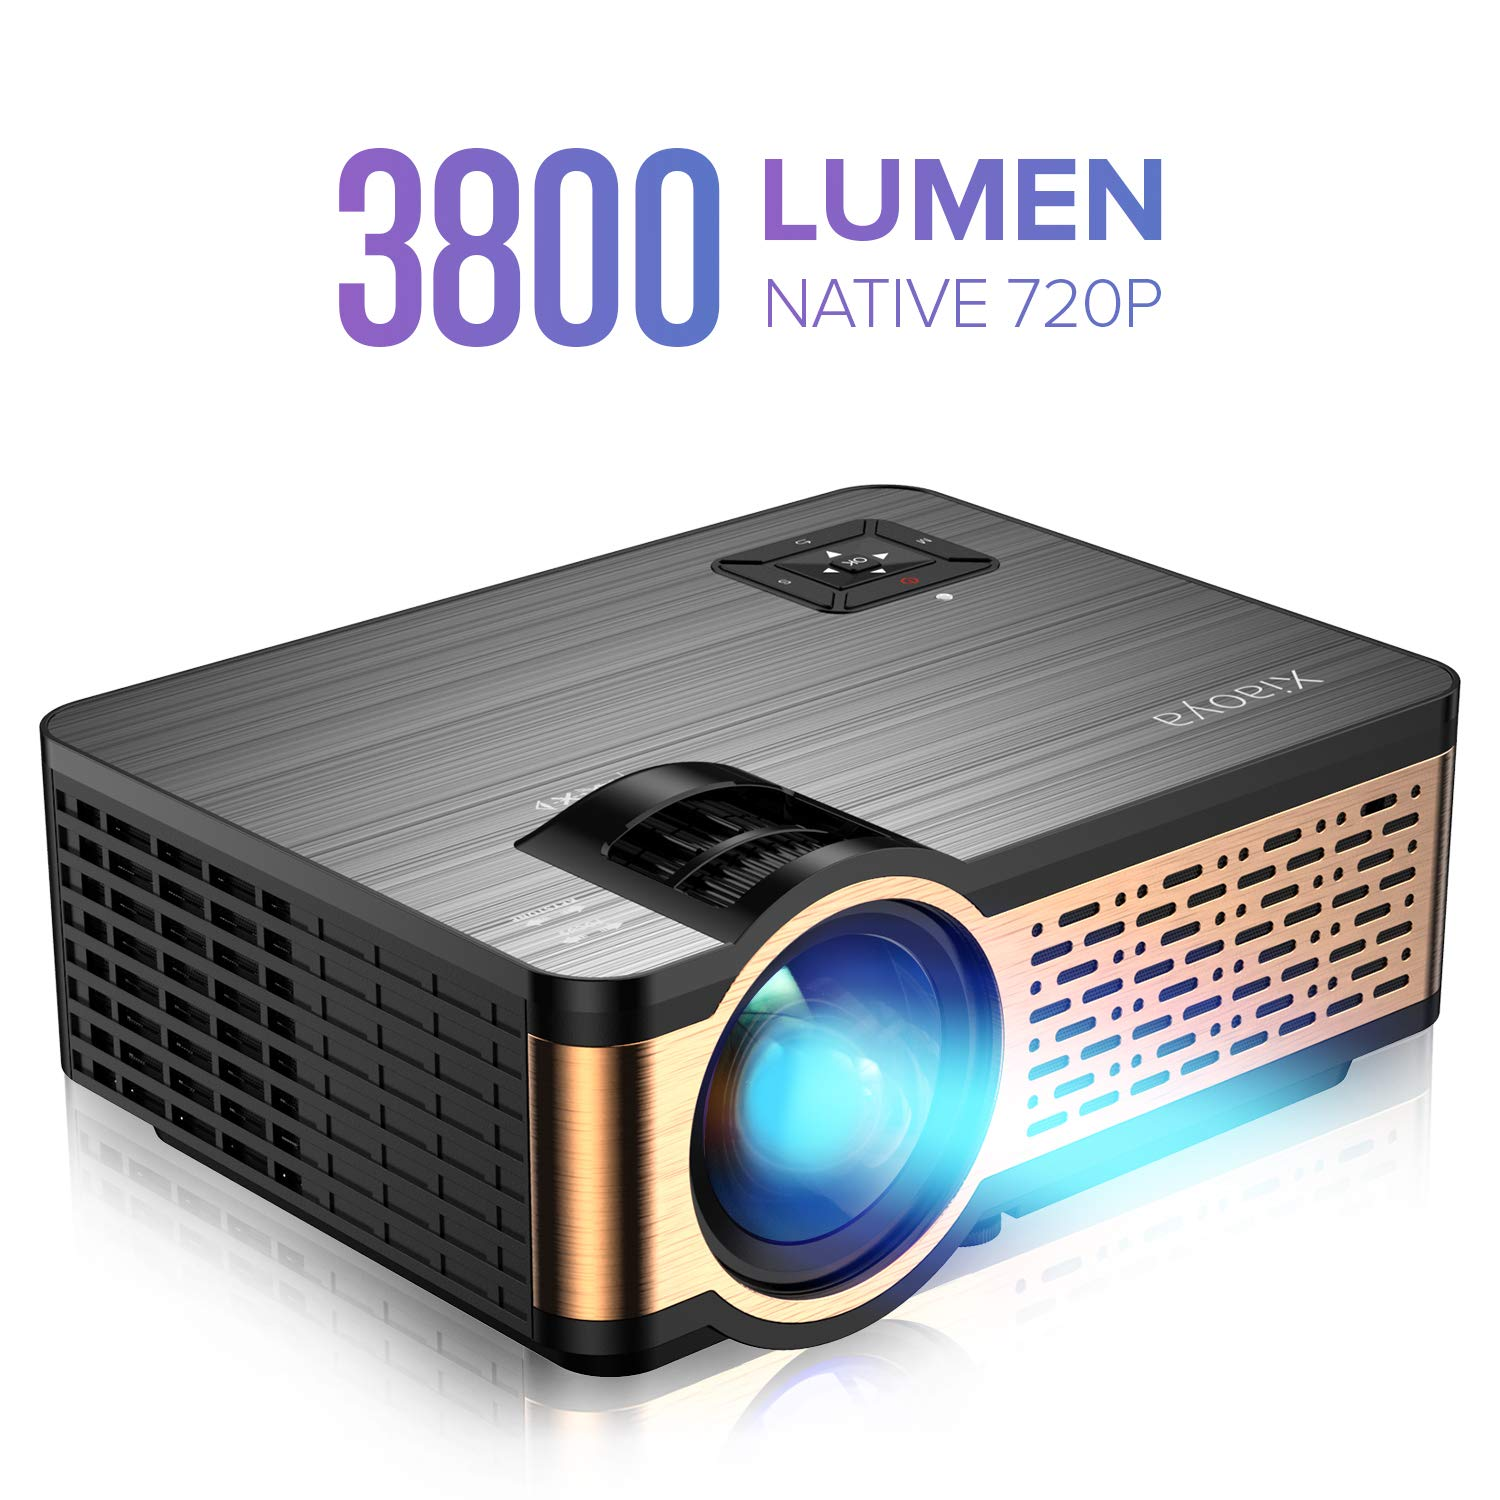 XIAOYA W5 Native 720P Mini Movie Projector with HiFi Speaker, 3800 Lumen Video Projector Support 1080P Display for Home Theater Entertainment,Compatible with HDMI, SD, AV, VGA, USB by Xiaoya